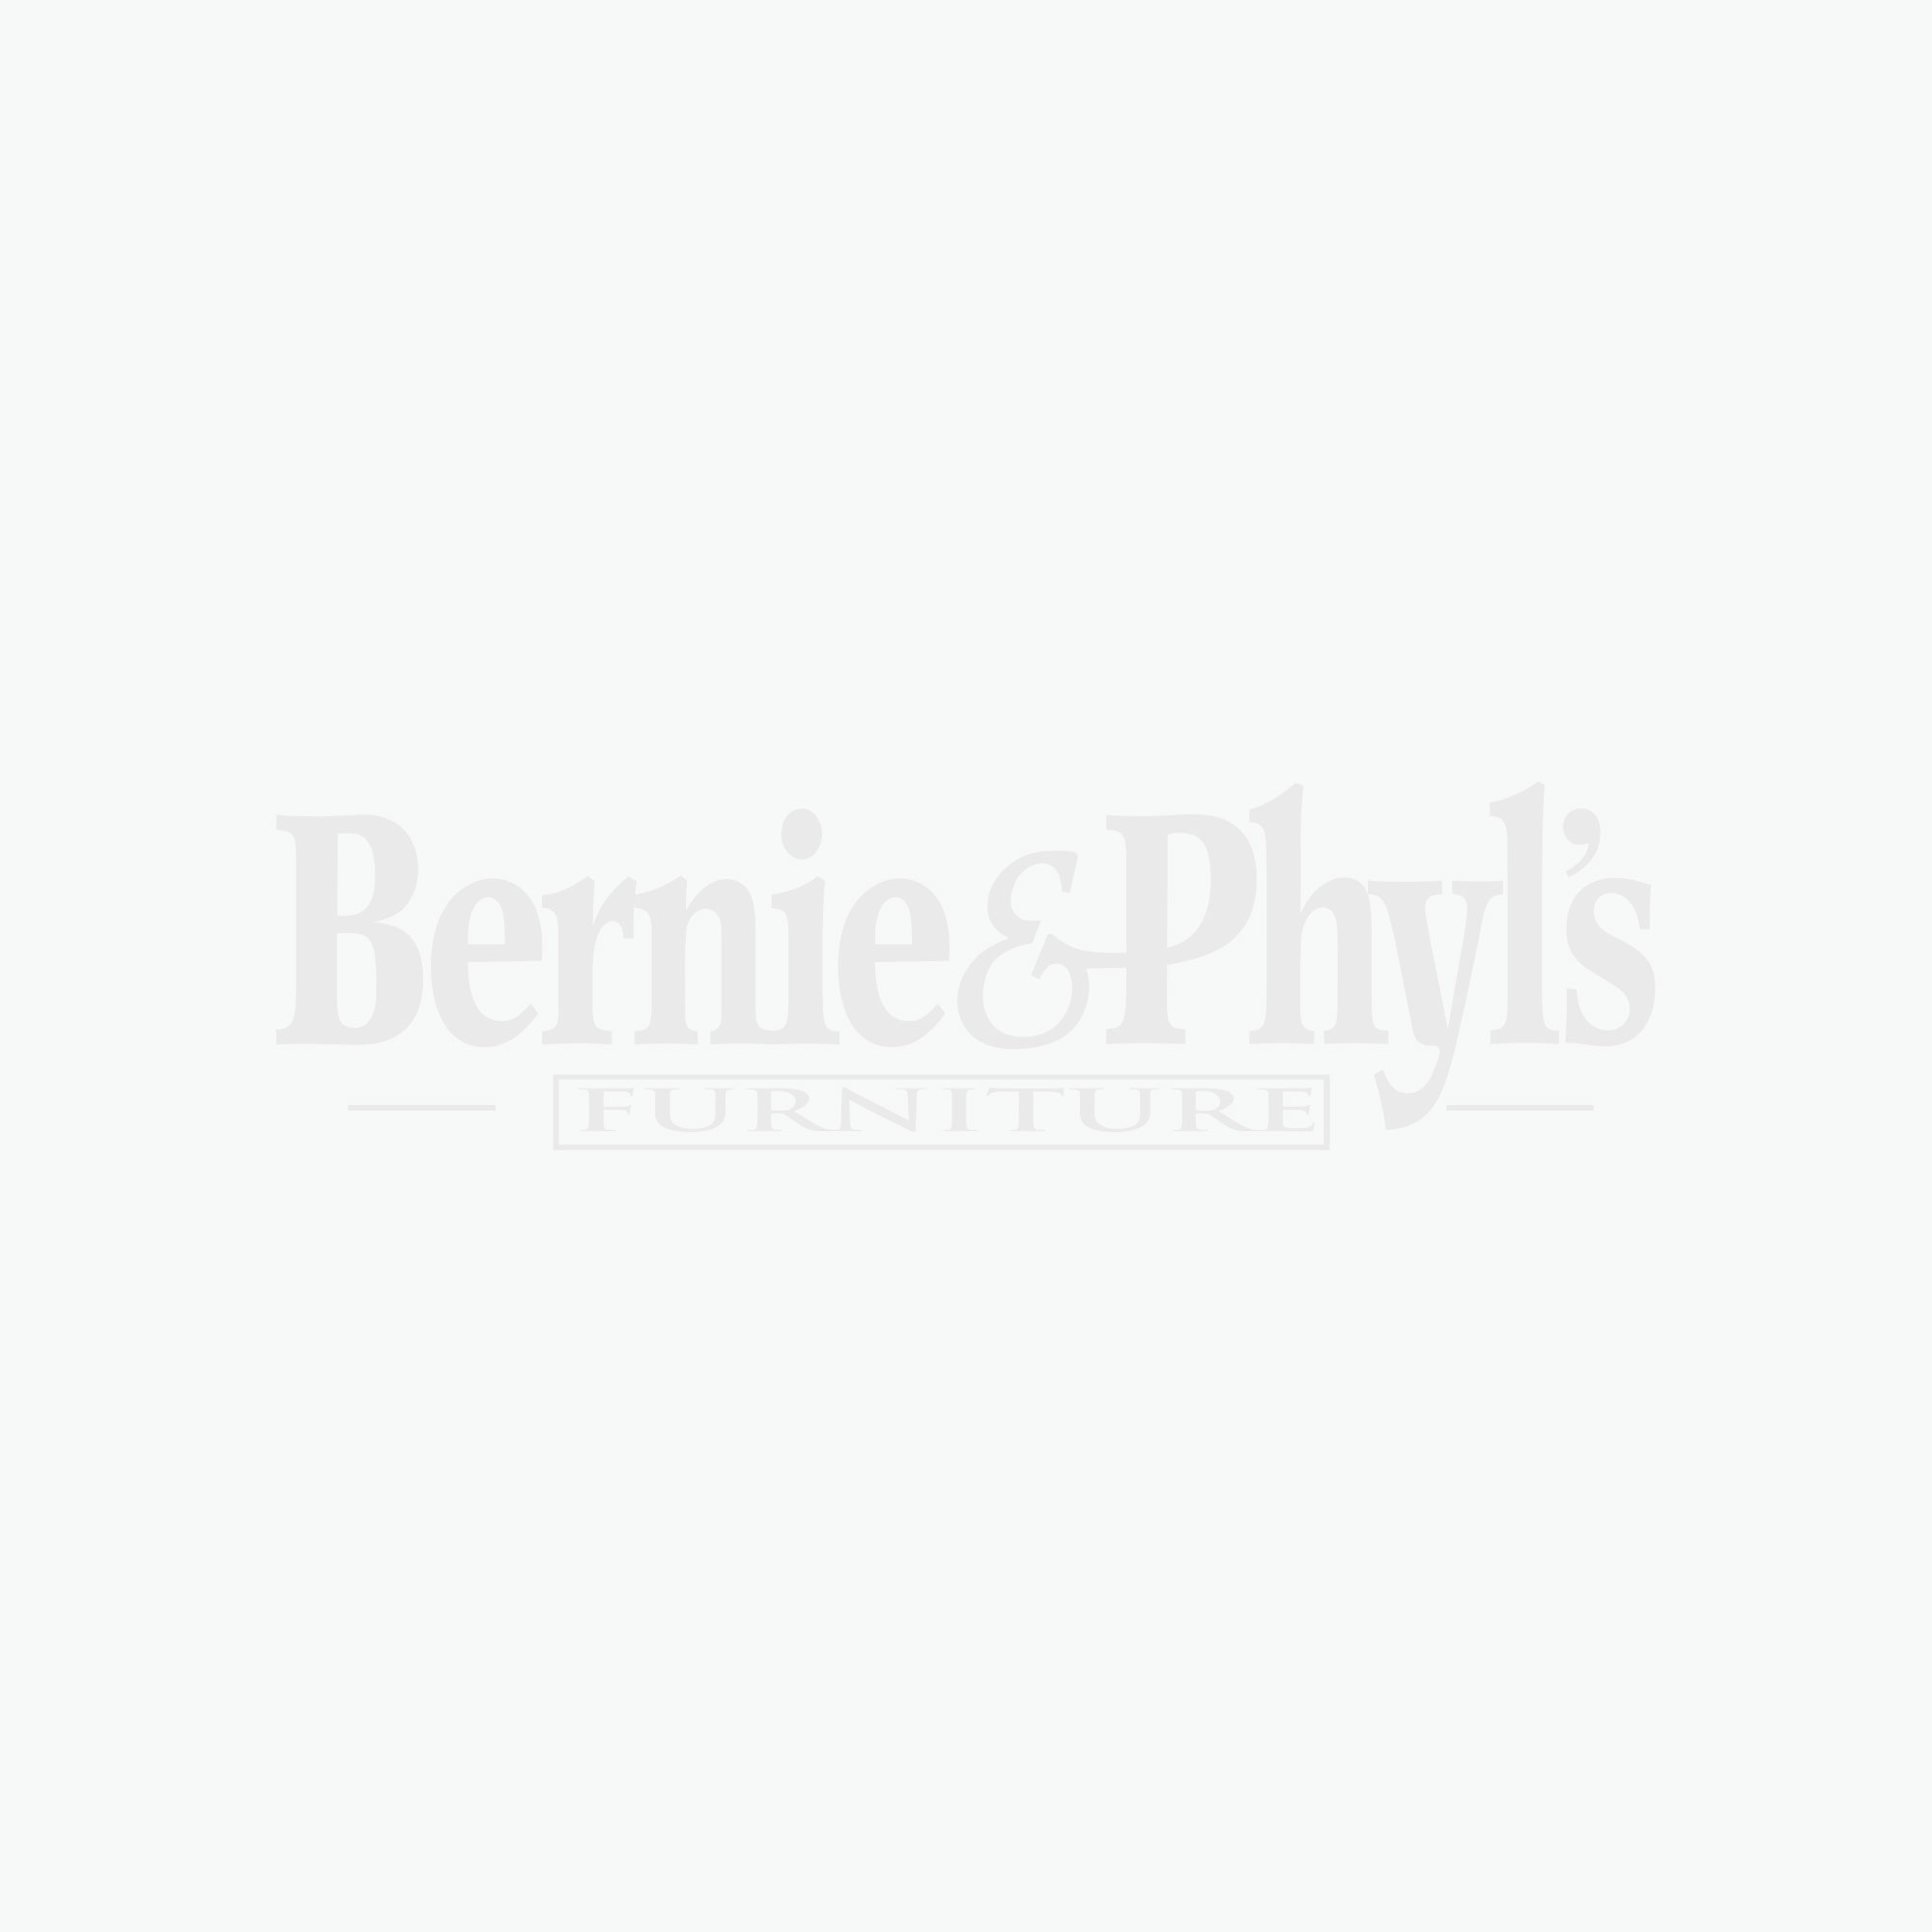 Chevron Gray Oak Upholstered Dining Bench Bernie Phyl S Furniture By Warehouse M Furniture